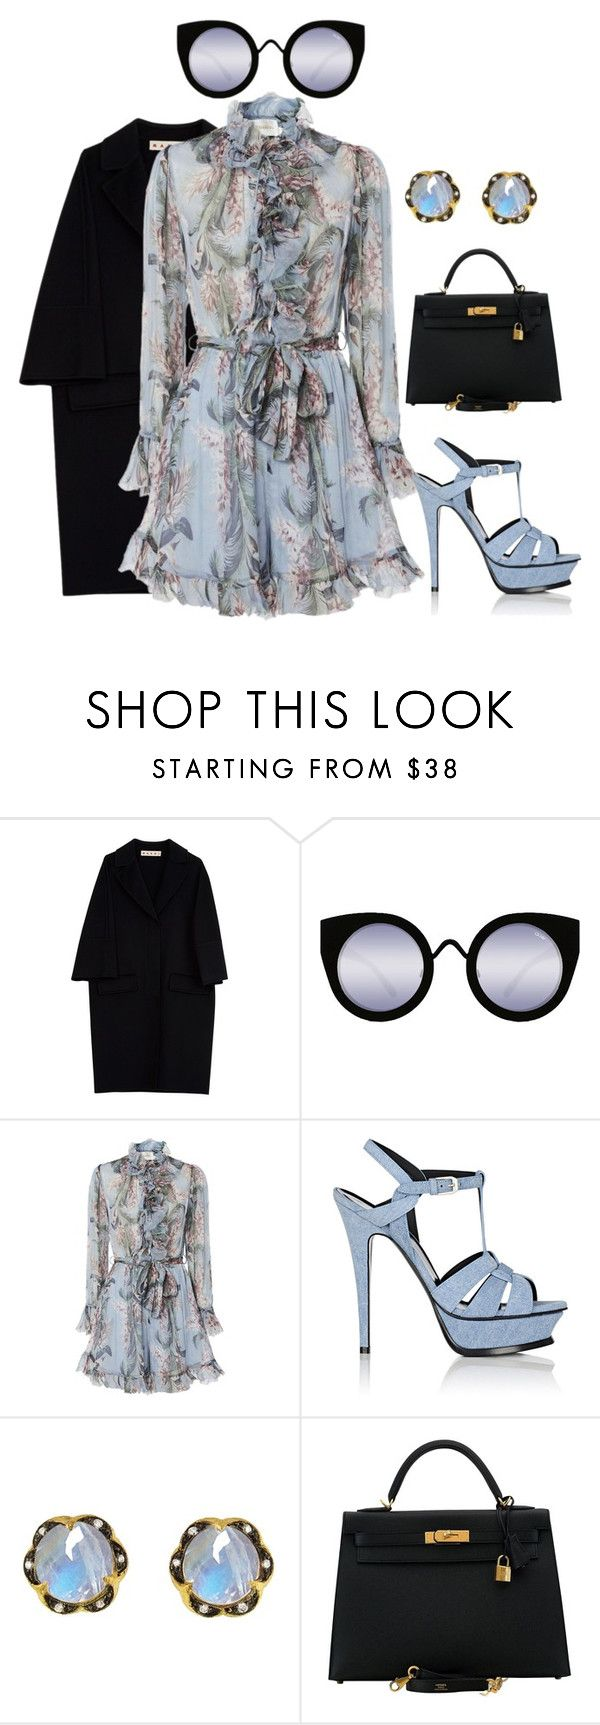 """""""Untitled #1612"""" by beng-gallo on Polyvore featuring Marni, Quay, Zimmermann, Yves Saint Laurent, Cathy Waterman, Hermès, YSL, hermes and rompers"""